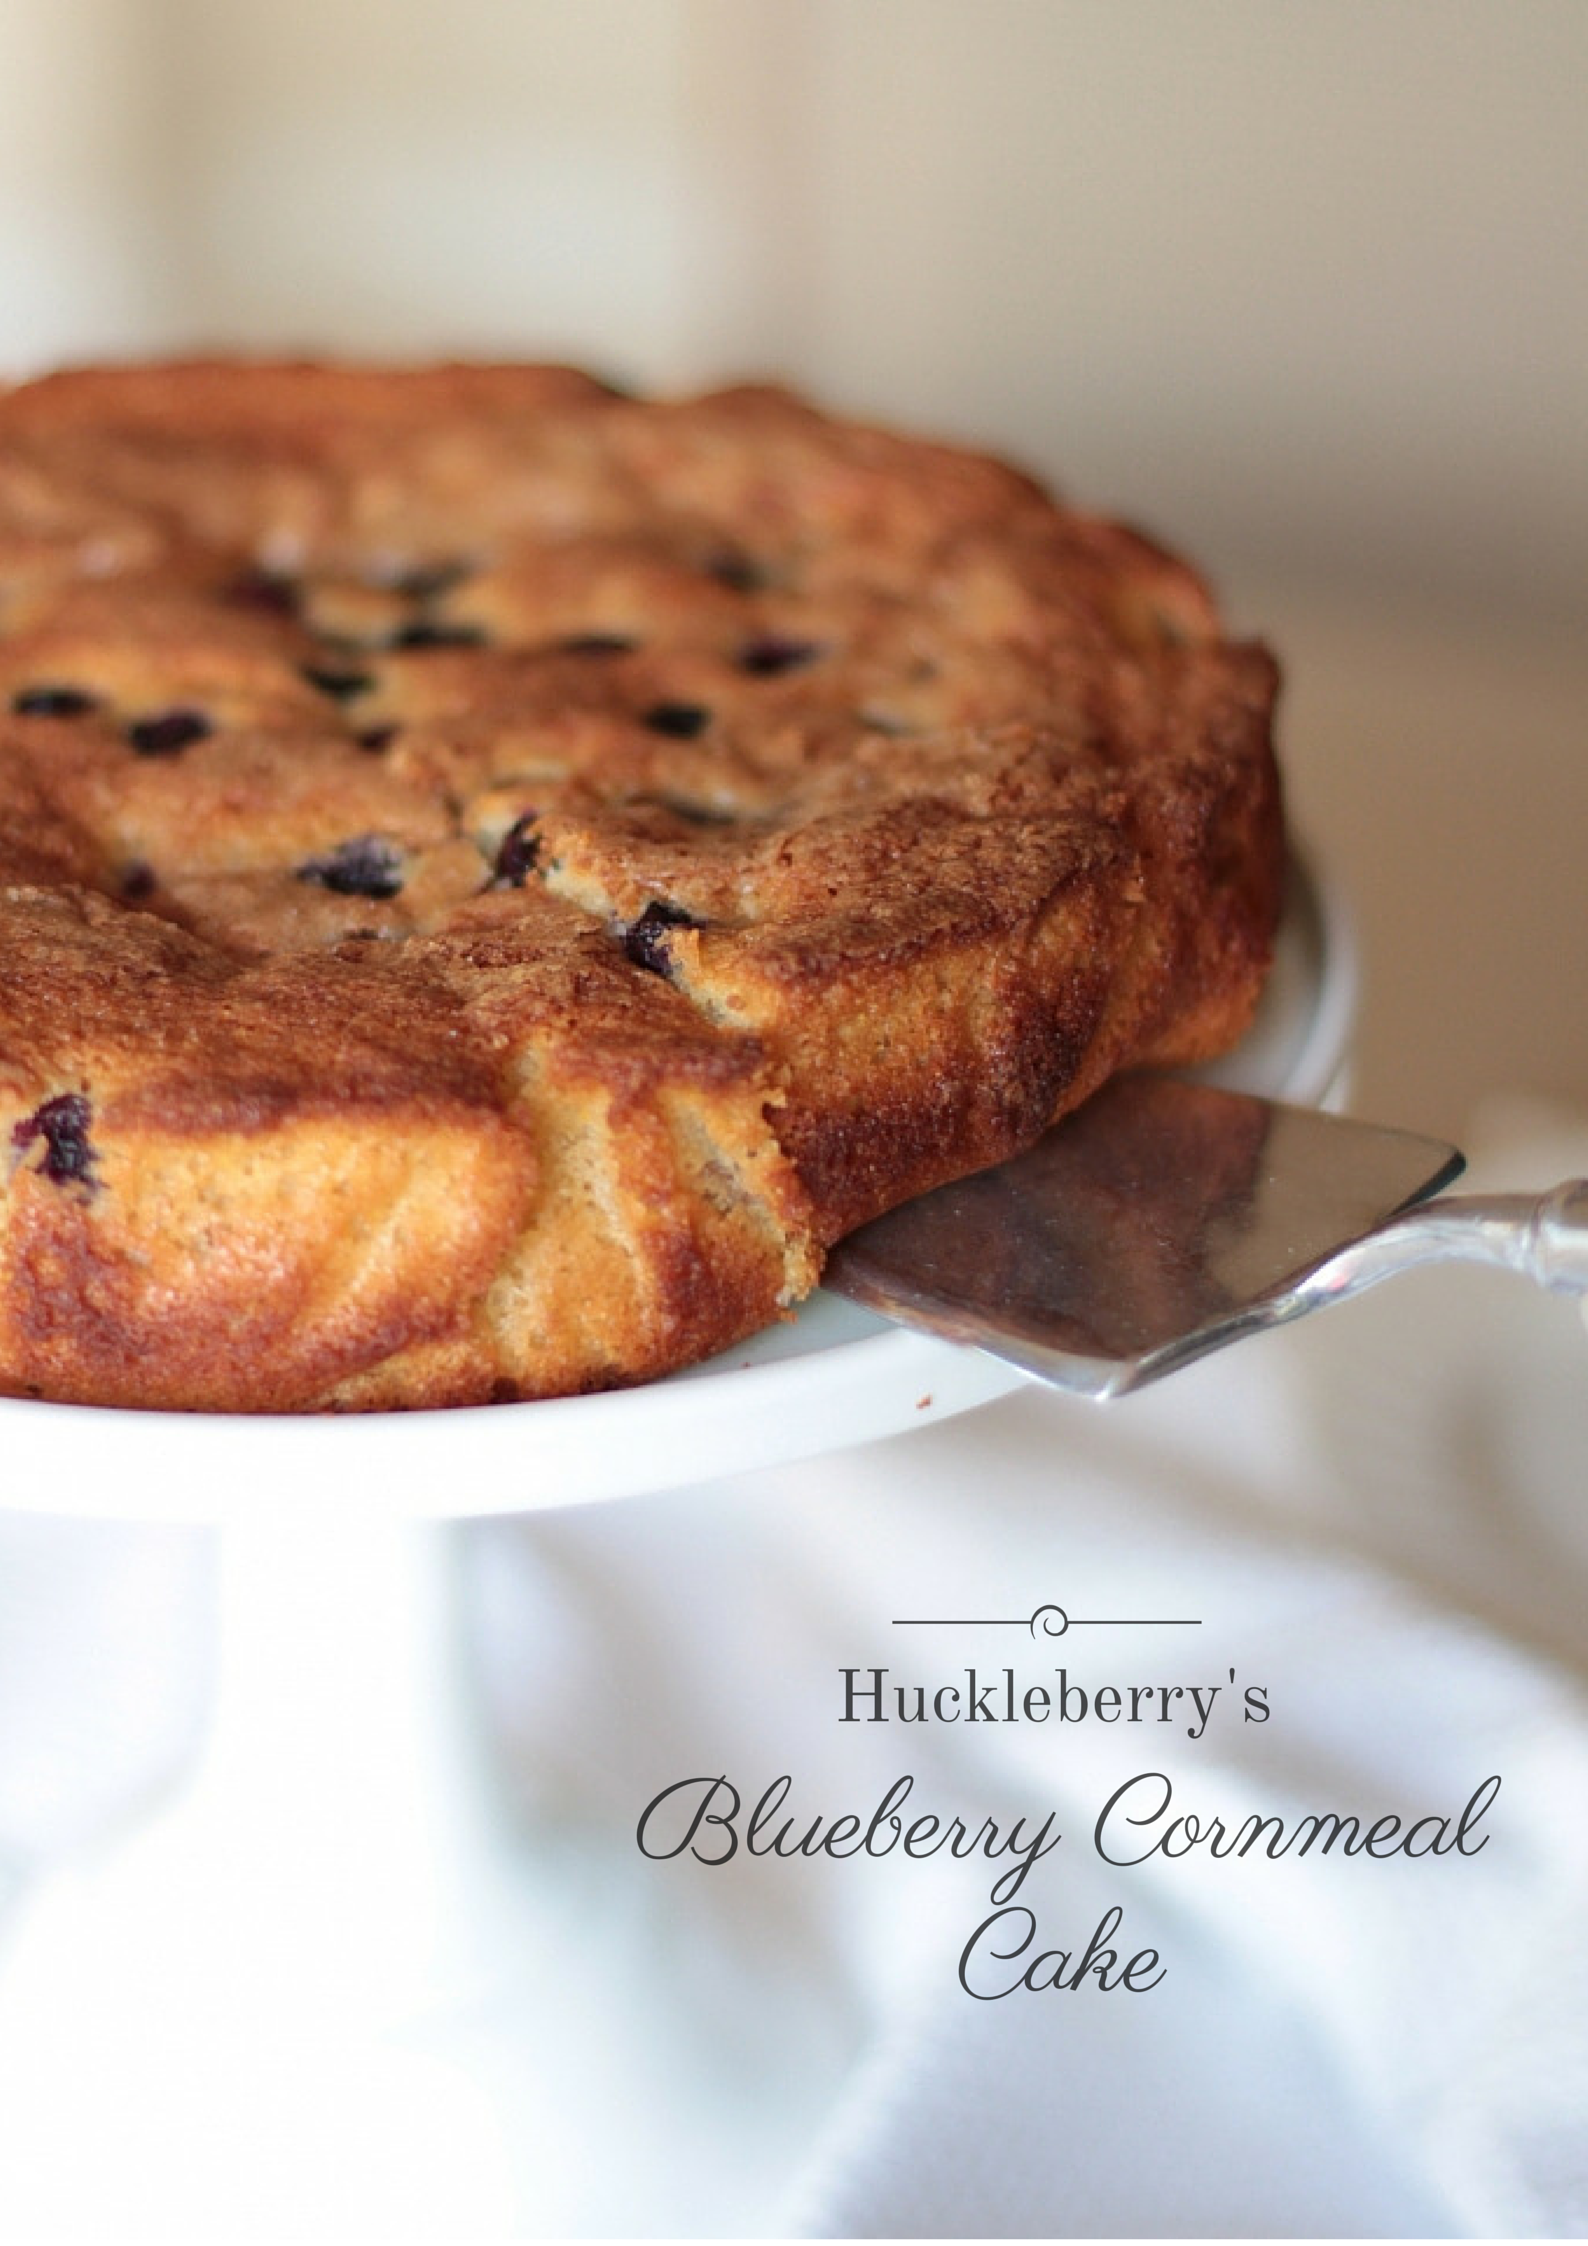 Huckleberry's Blueberry Cornmeal Cake I Adorned With Love